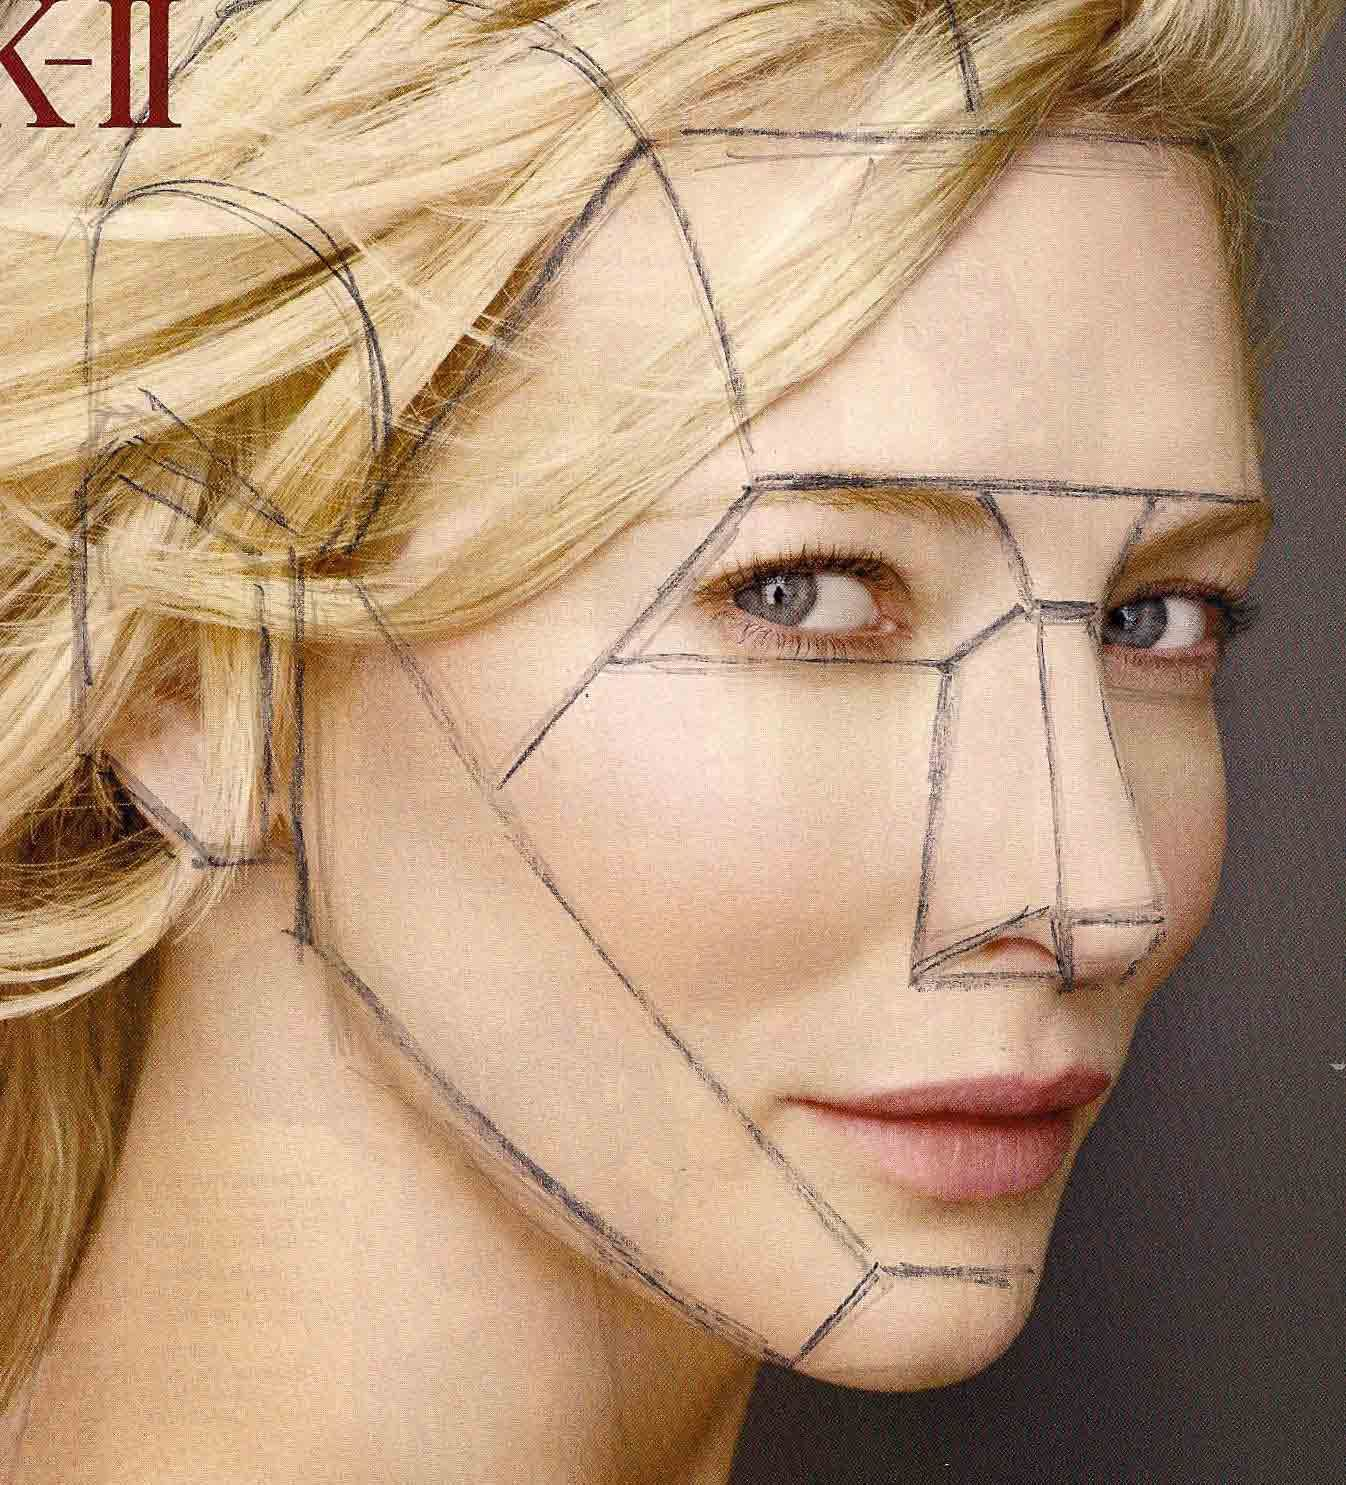 draw planes of the face over magazine